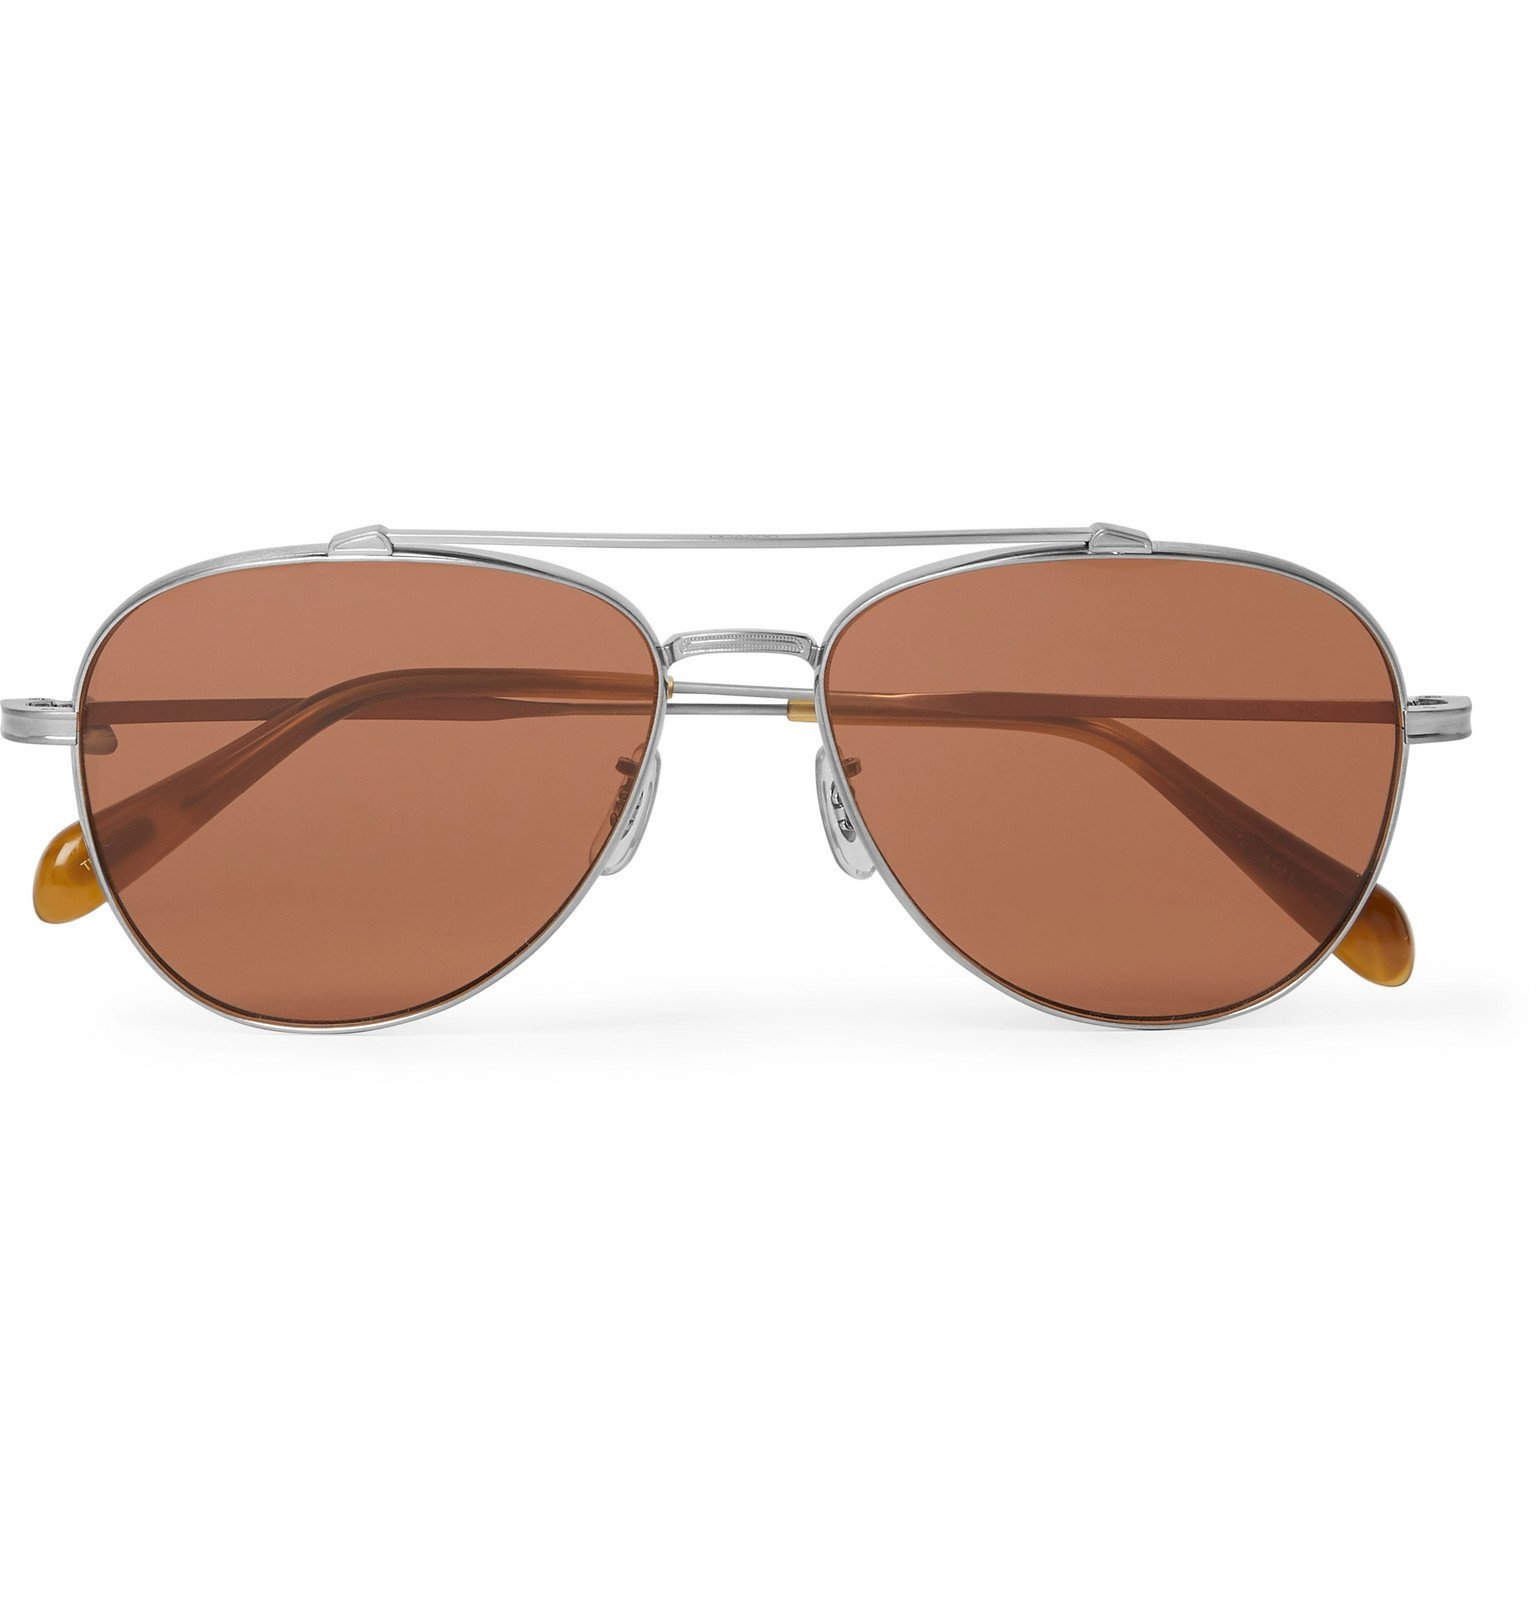 Oliver Peoples - Rikson Aviator-Style Silver-Tone Titanium and Tortoiseshell Acetate Sunglasses - Silver